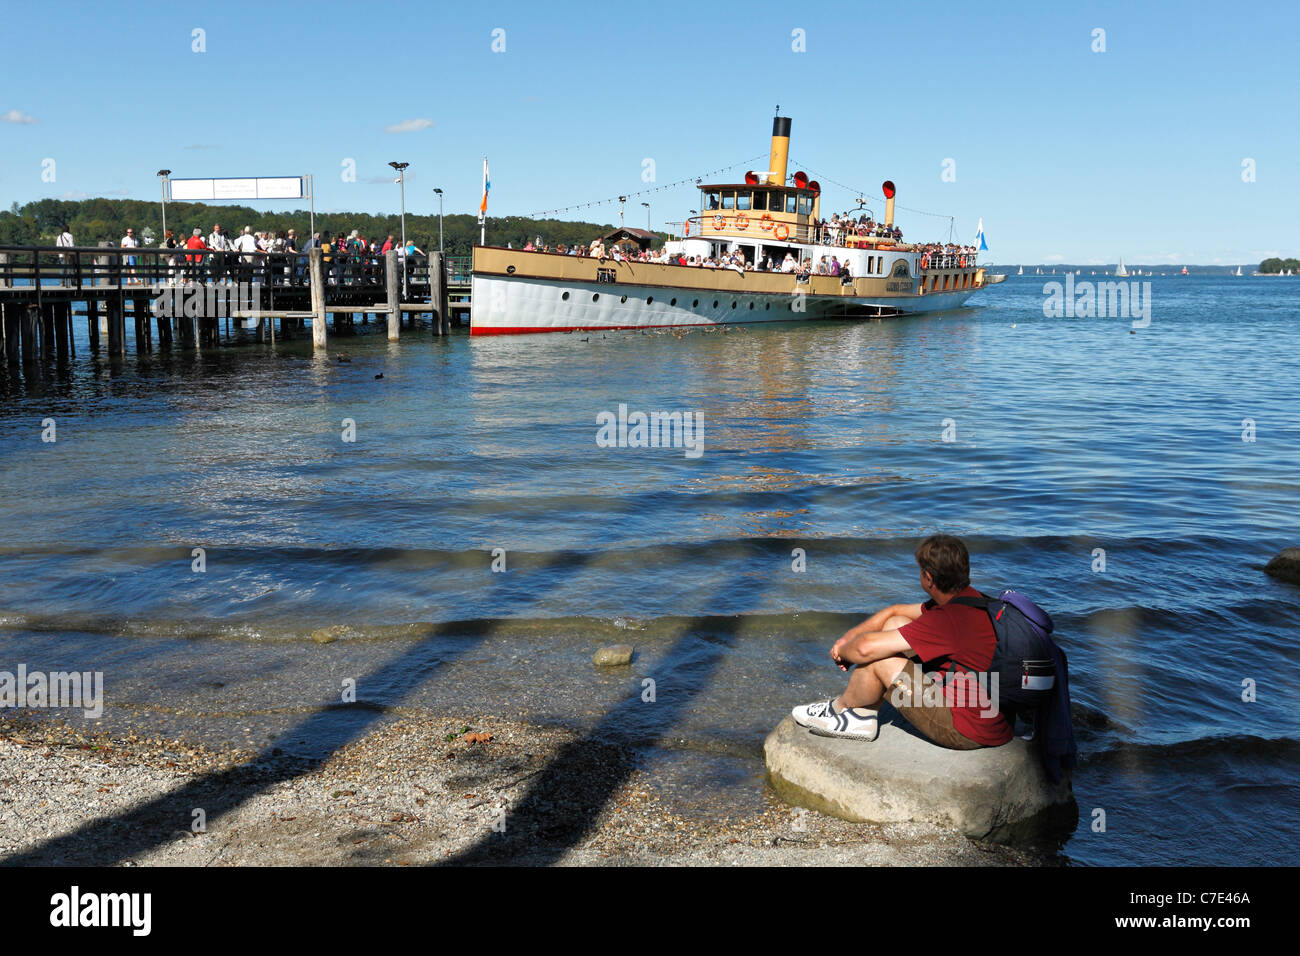 Man sitting on foreshore watching a Chiemsee Ferry Boat at the Herreninsel, Chiemgau Upper Bavaria Germany - Stock Image